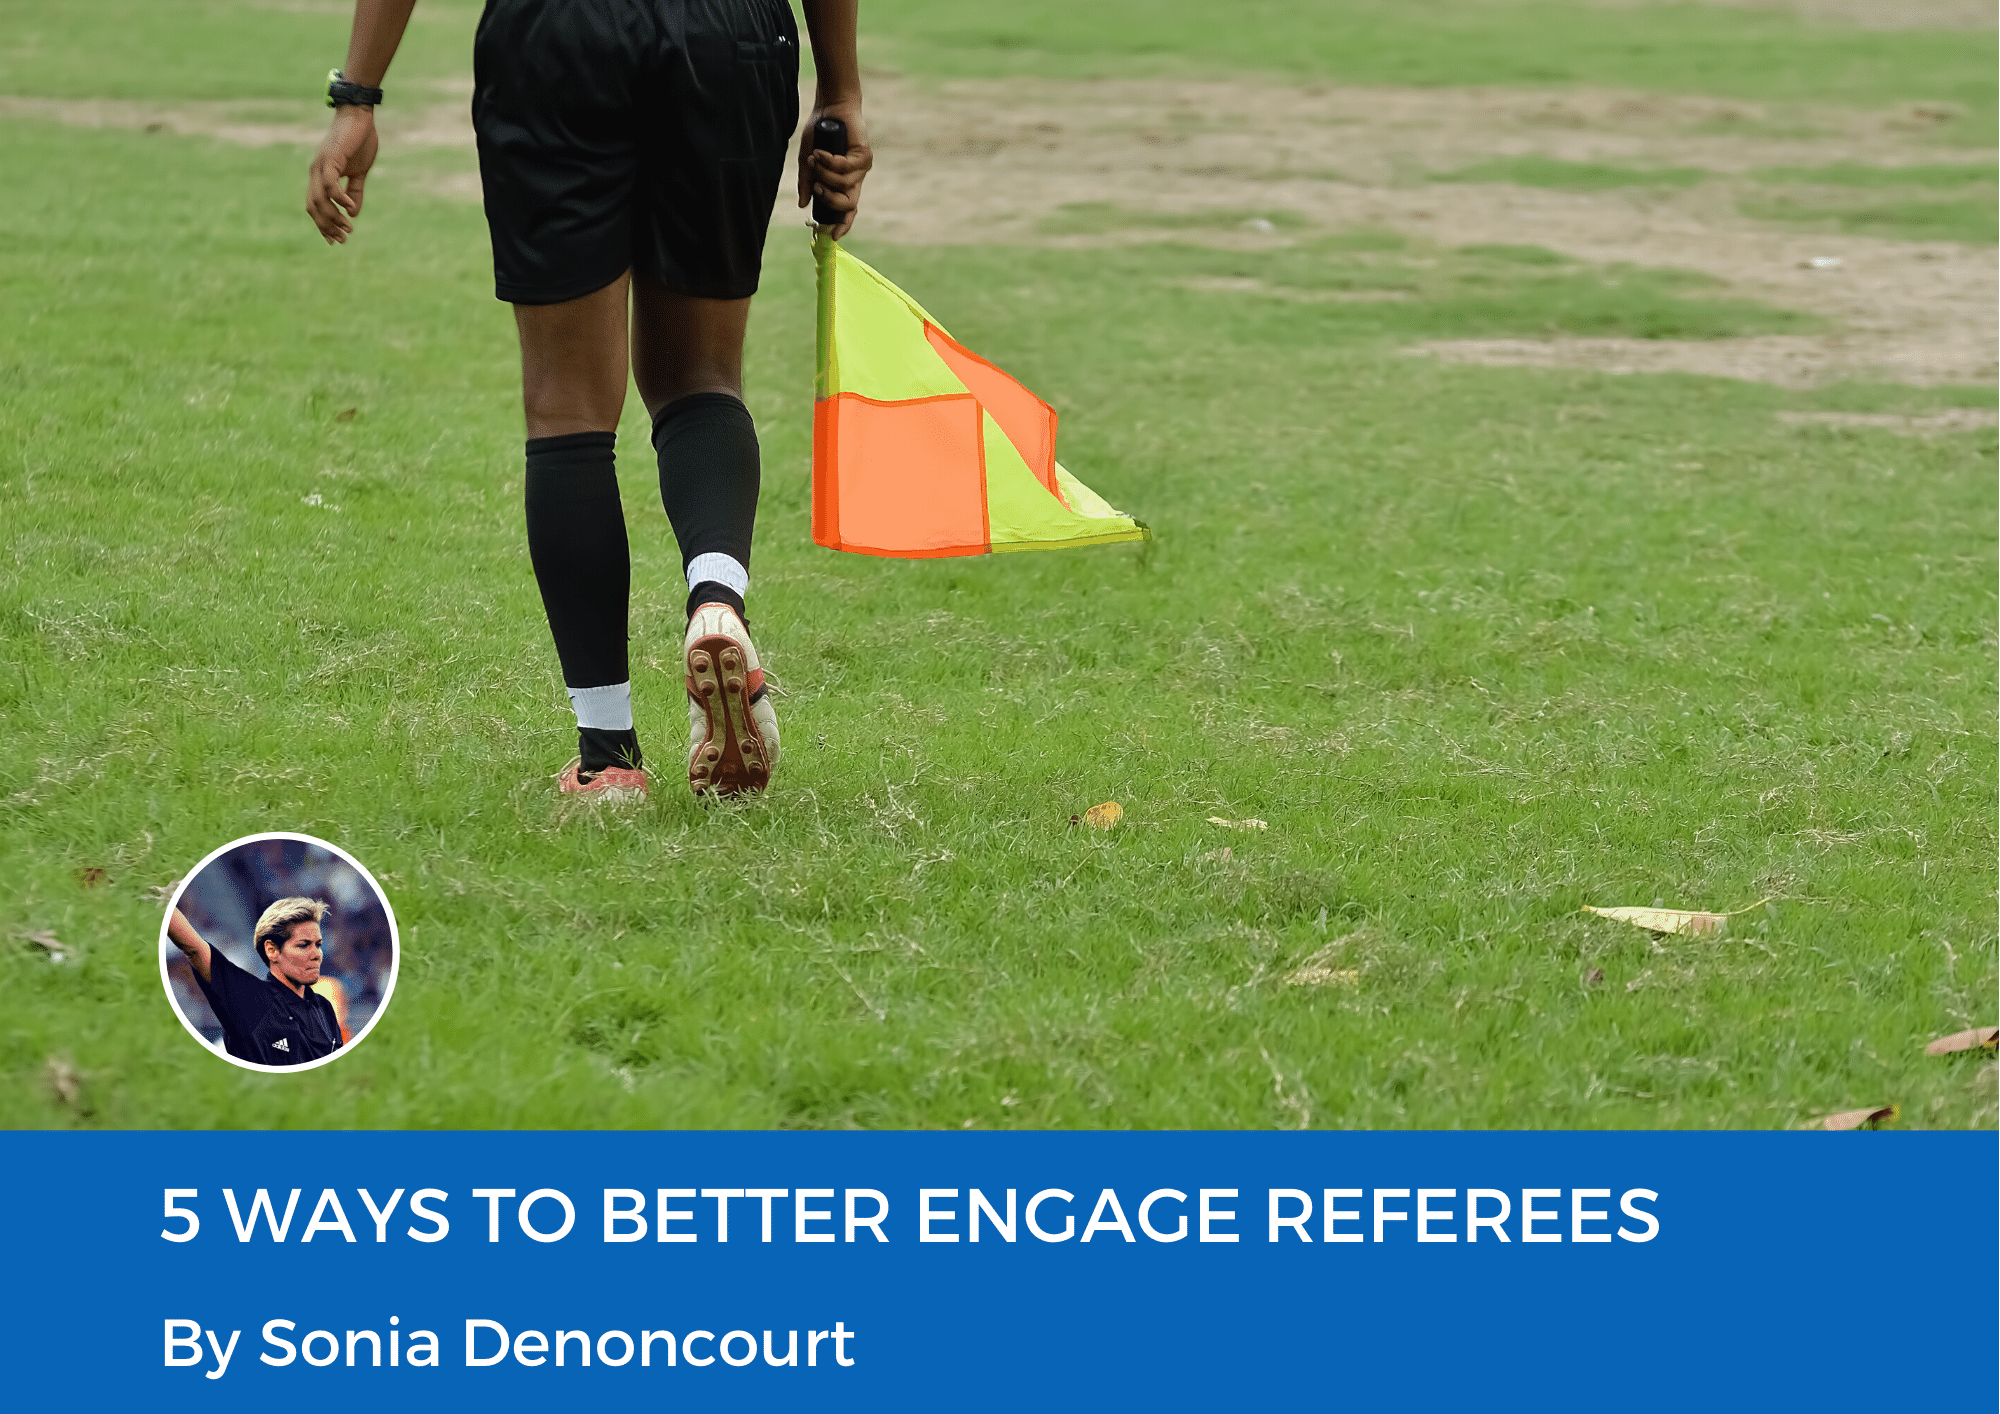 5 Ways to Better Engage Referees